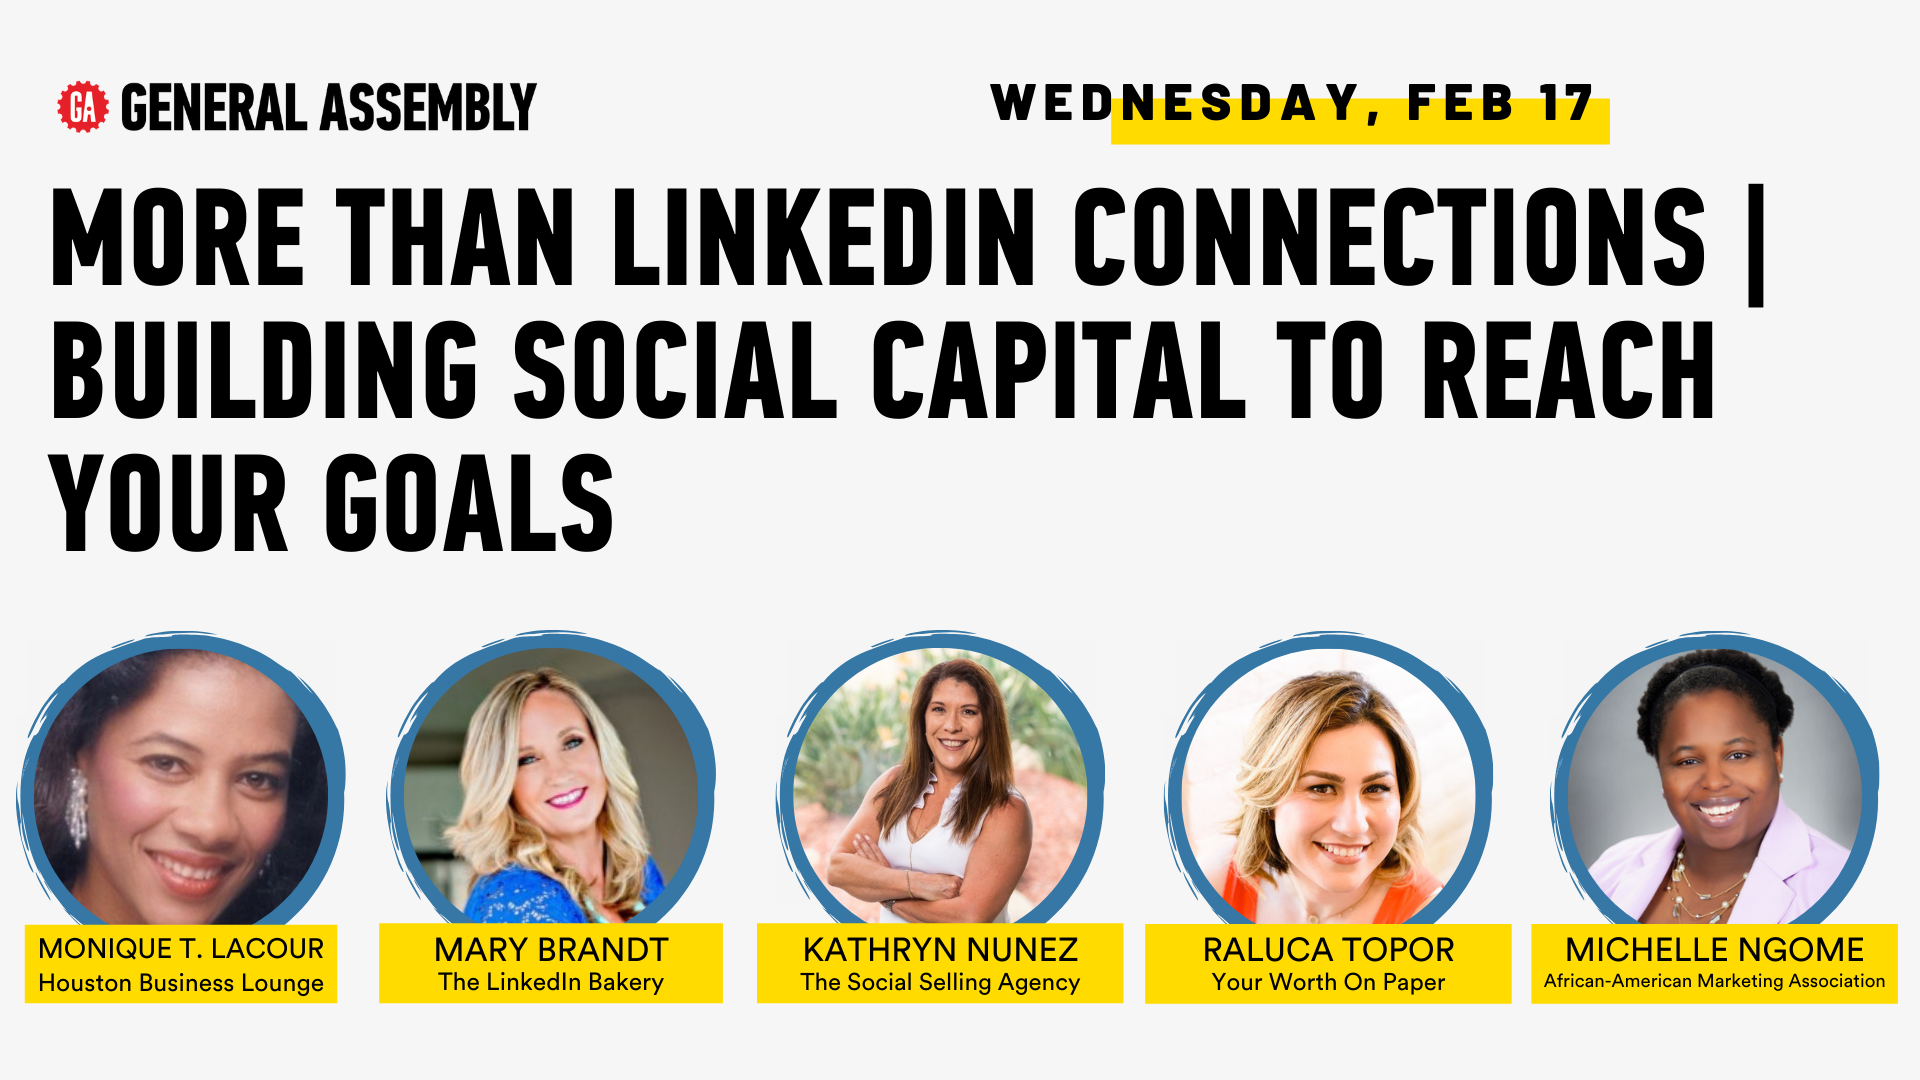 More Than LinkedIn Connections   Building Social Capital to Reach Your Goals